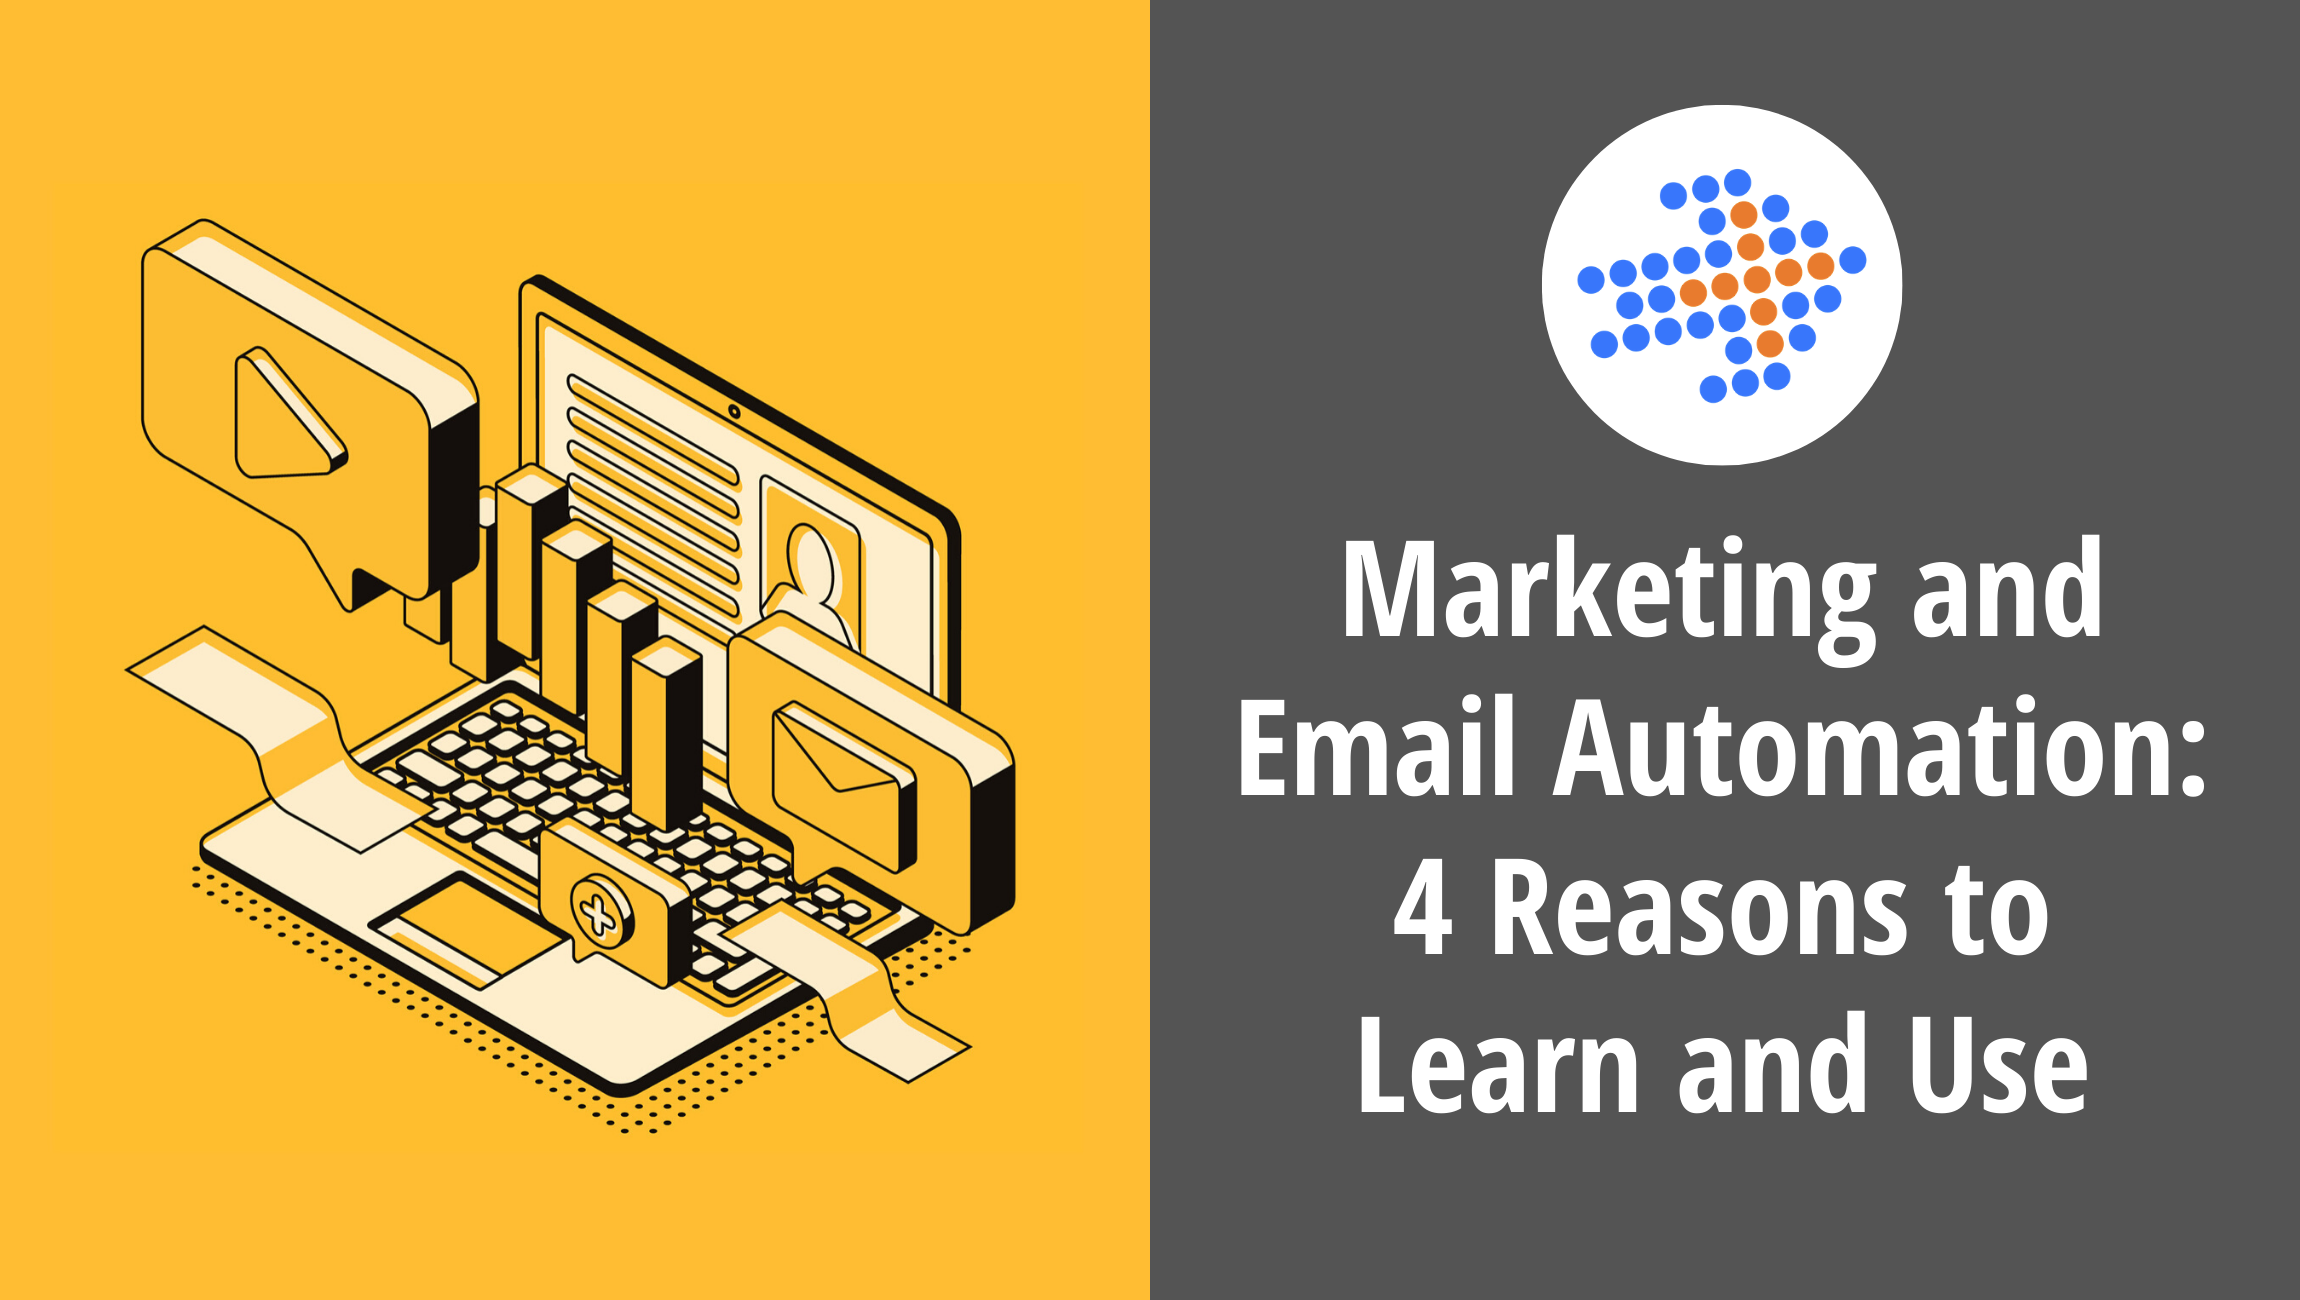 Marketing and Email Automation_ 4 Reasons to Learn and Use